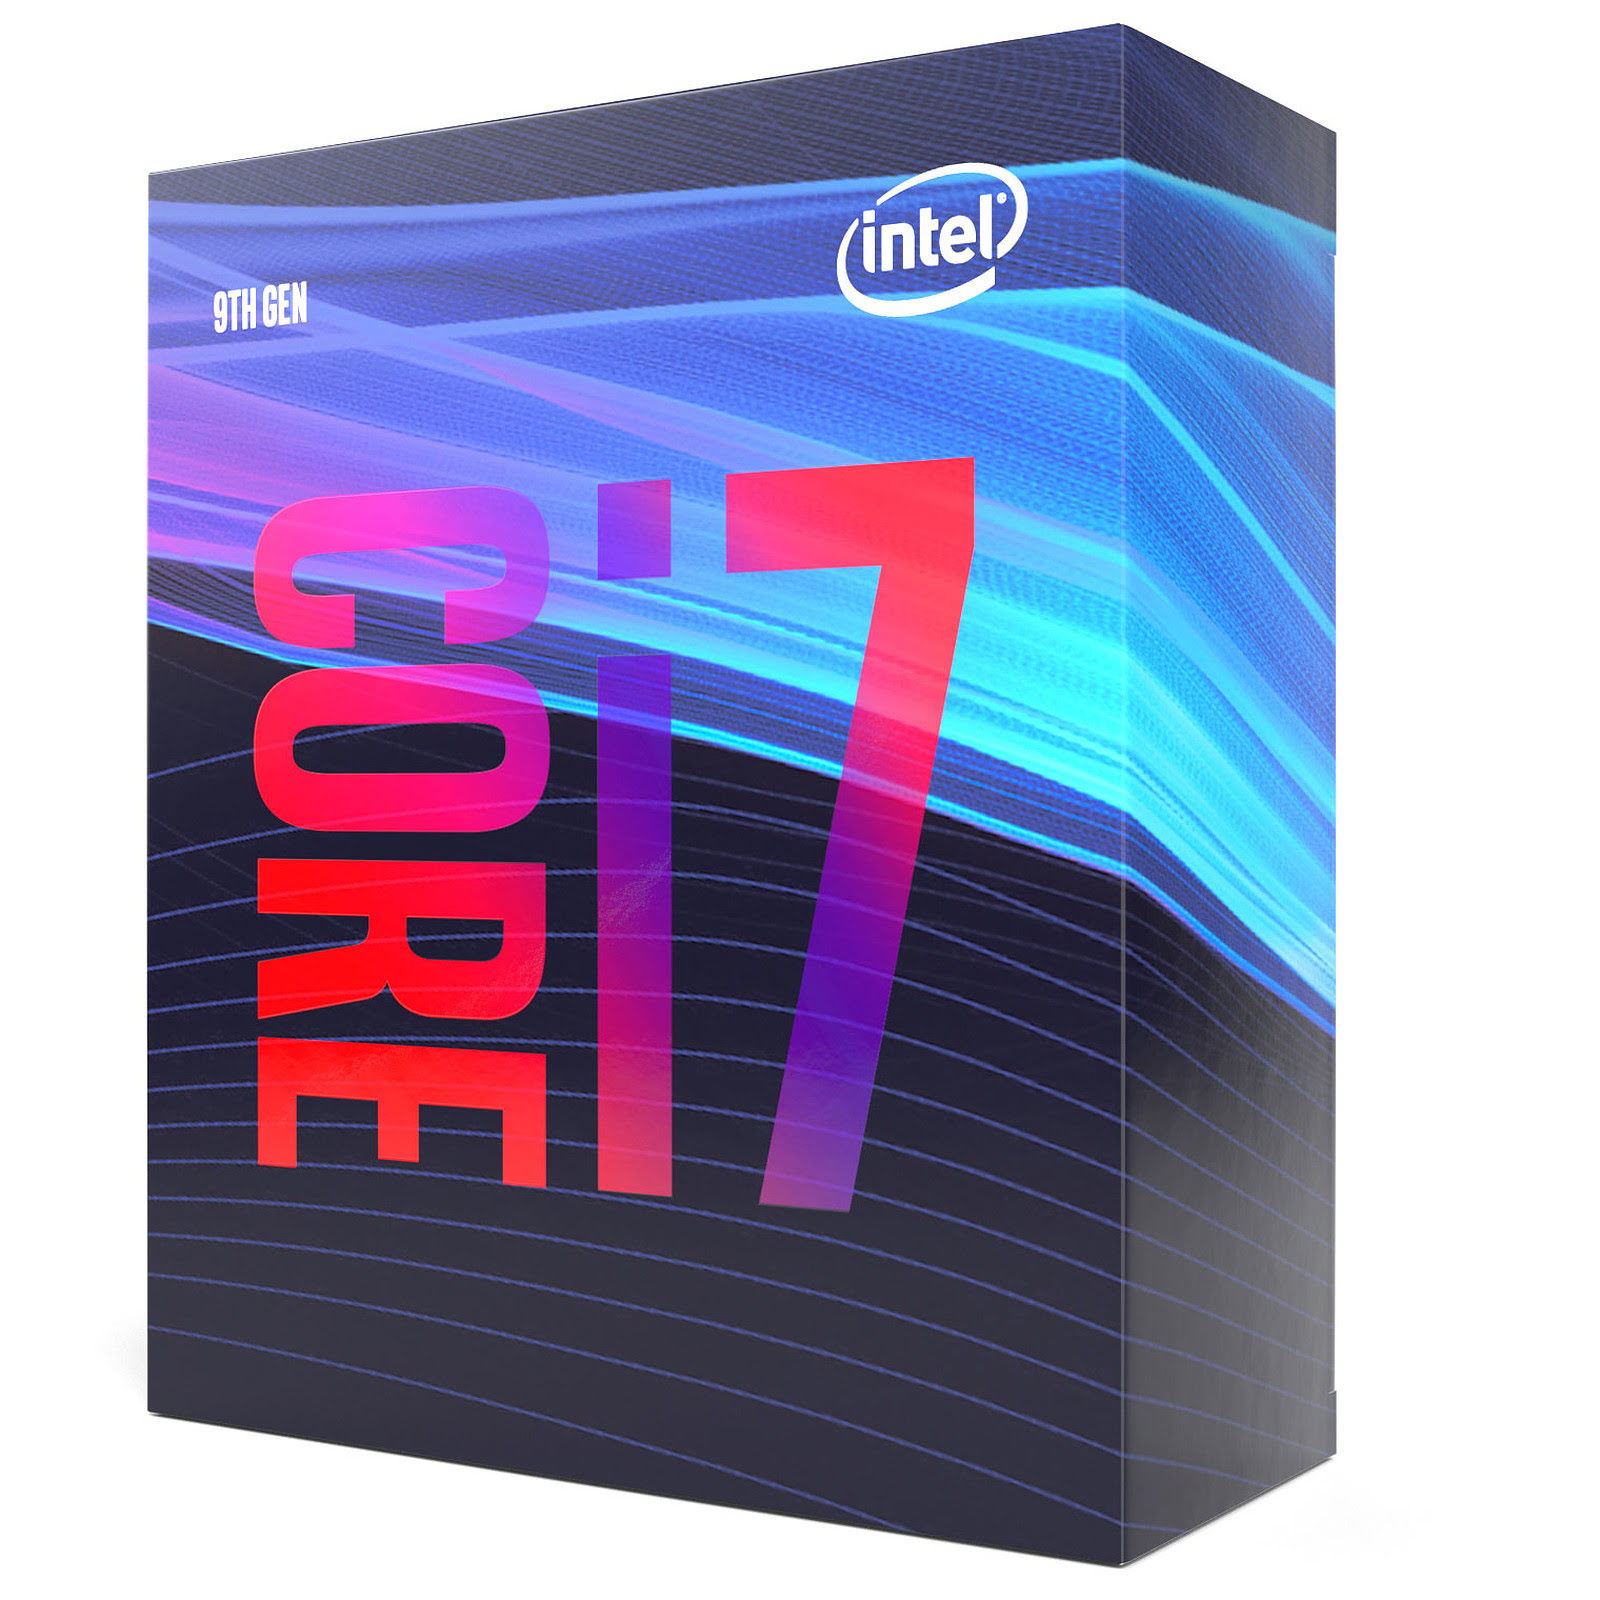 Intel Core i7-9700 - 3GHz - Processeur Intel - Cybertek.fr - 1